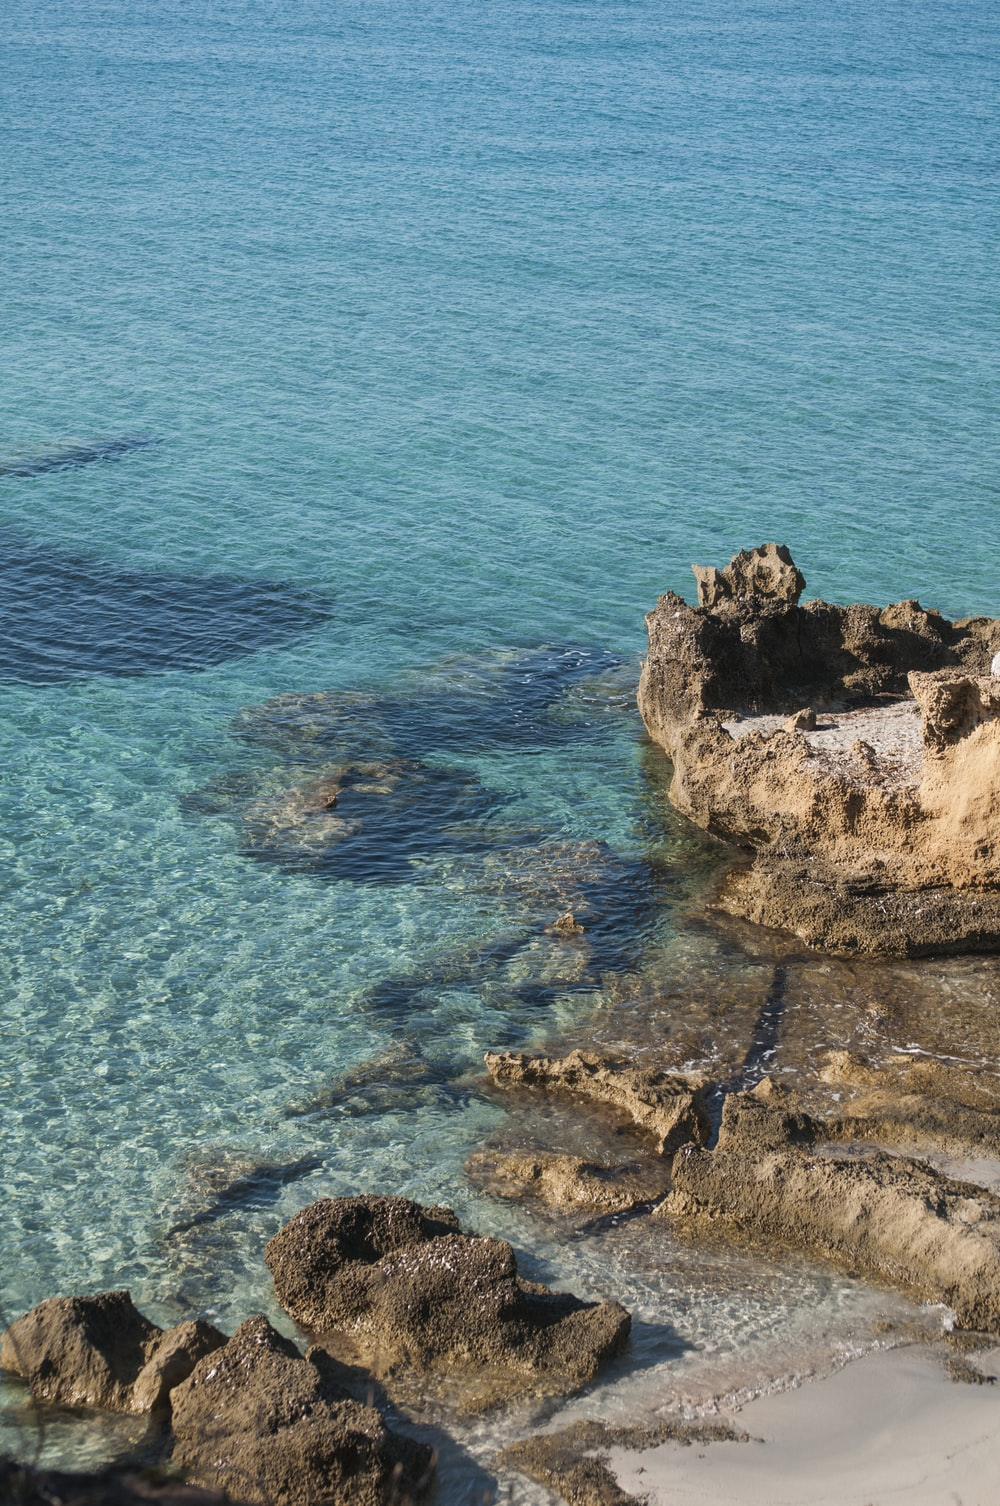 brown rock formation on blue sea during daytime